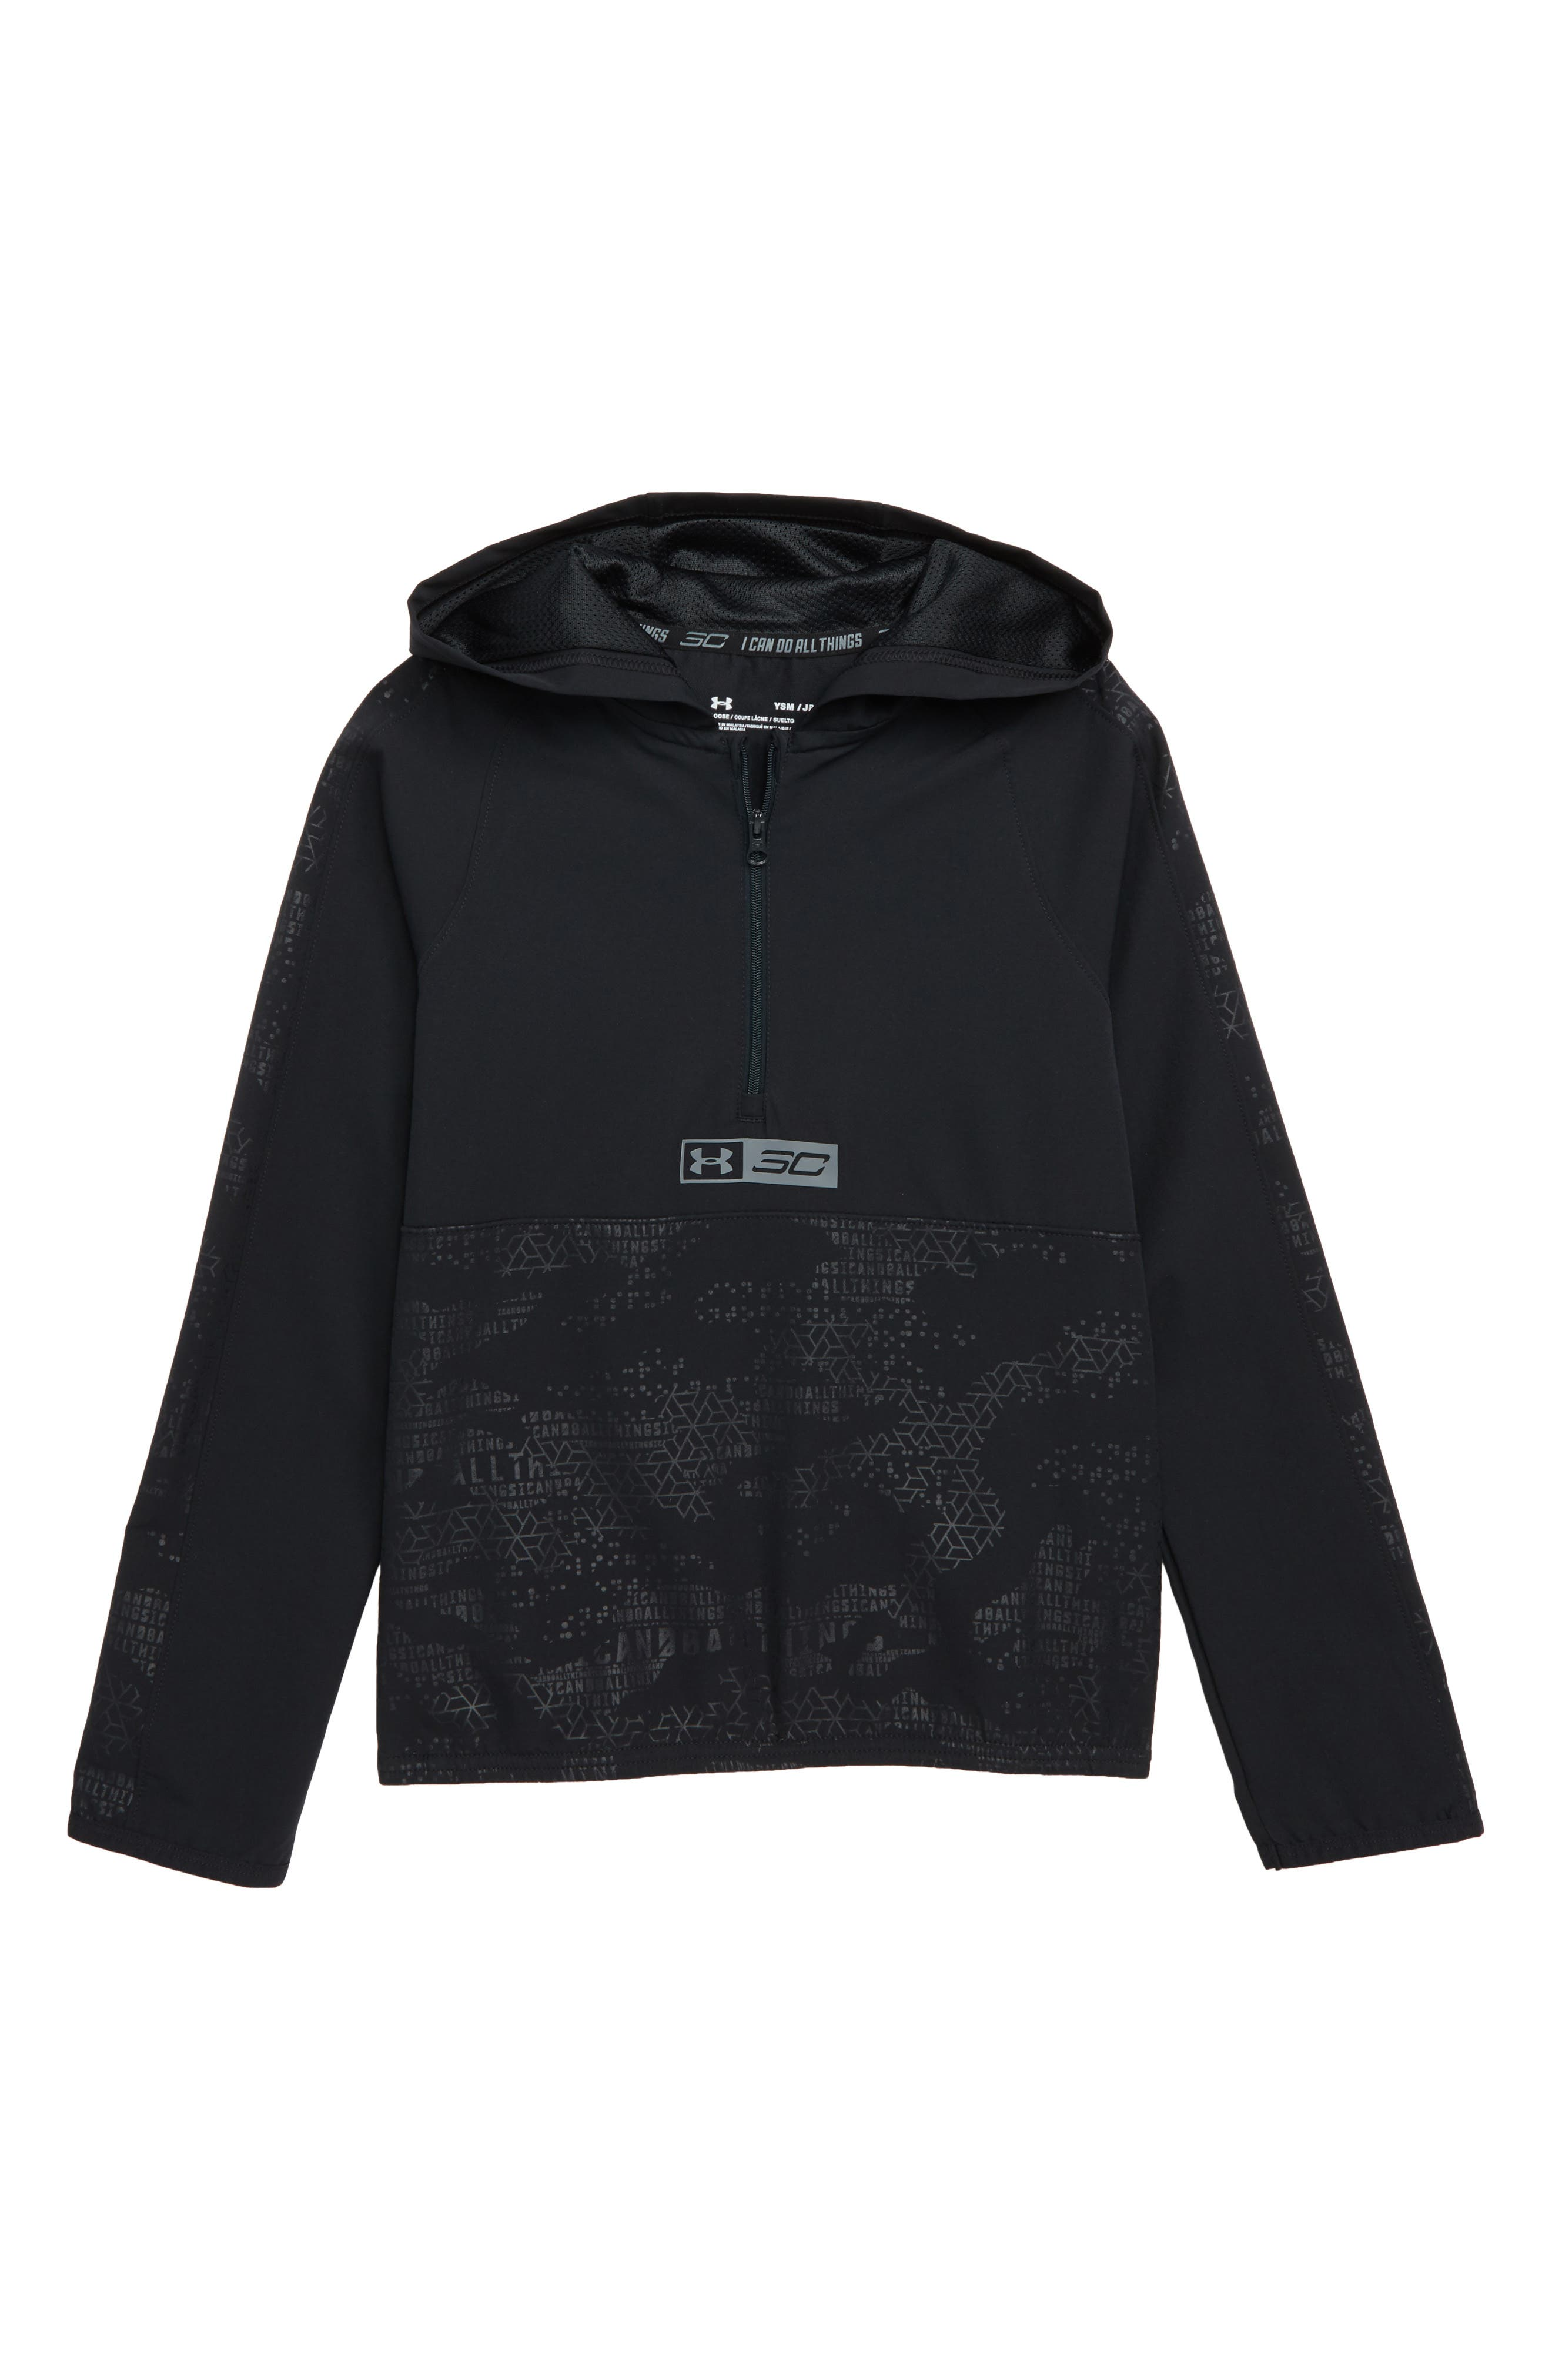 SC30 Windwear Hooded Pullover,                         Main,                         color, BLACK / / STEALTH GRAY